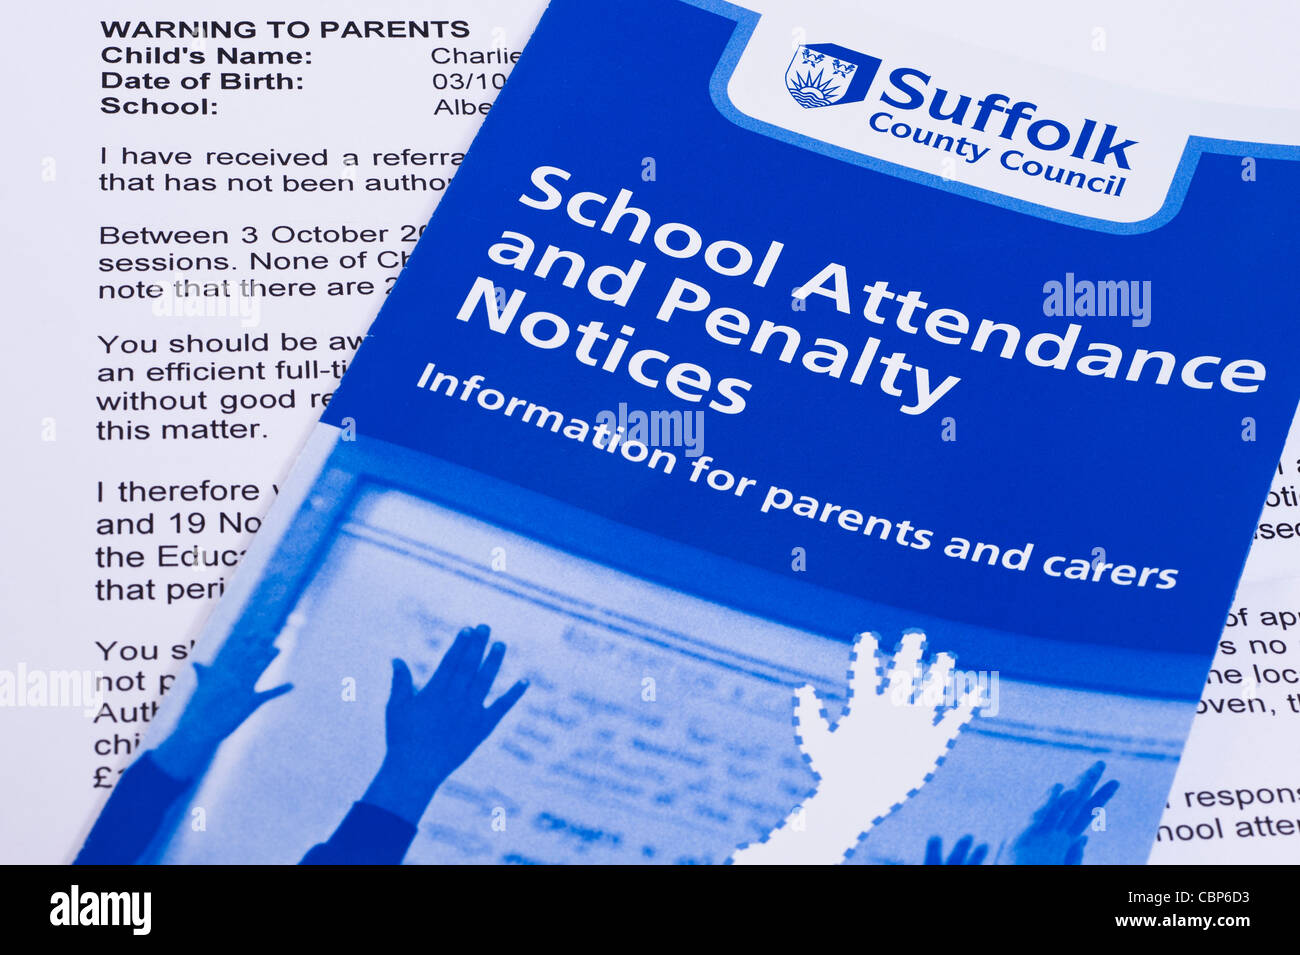 A Warning Letter Sent From A Council To Parents Taking Their